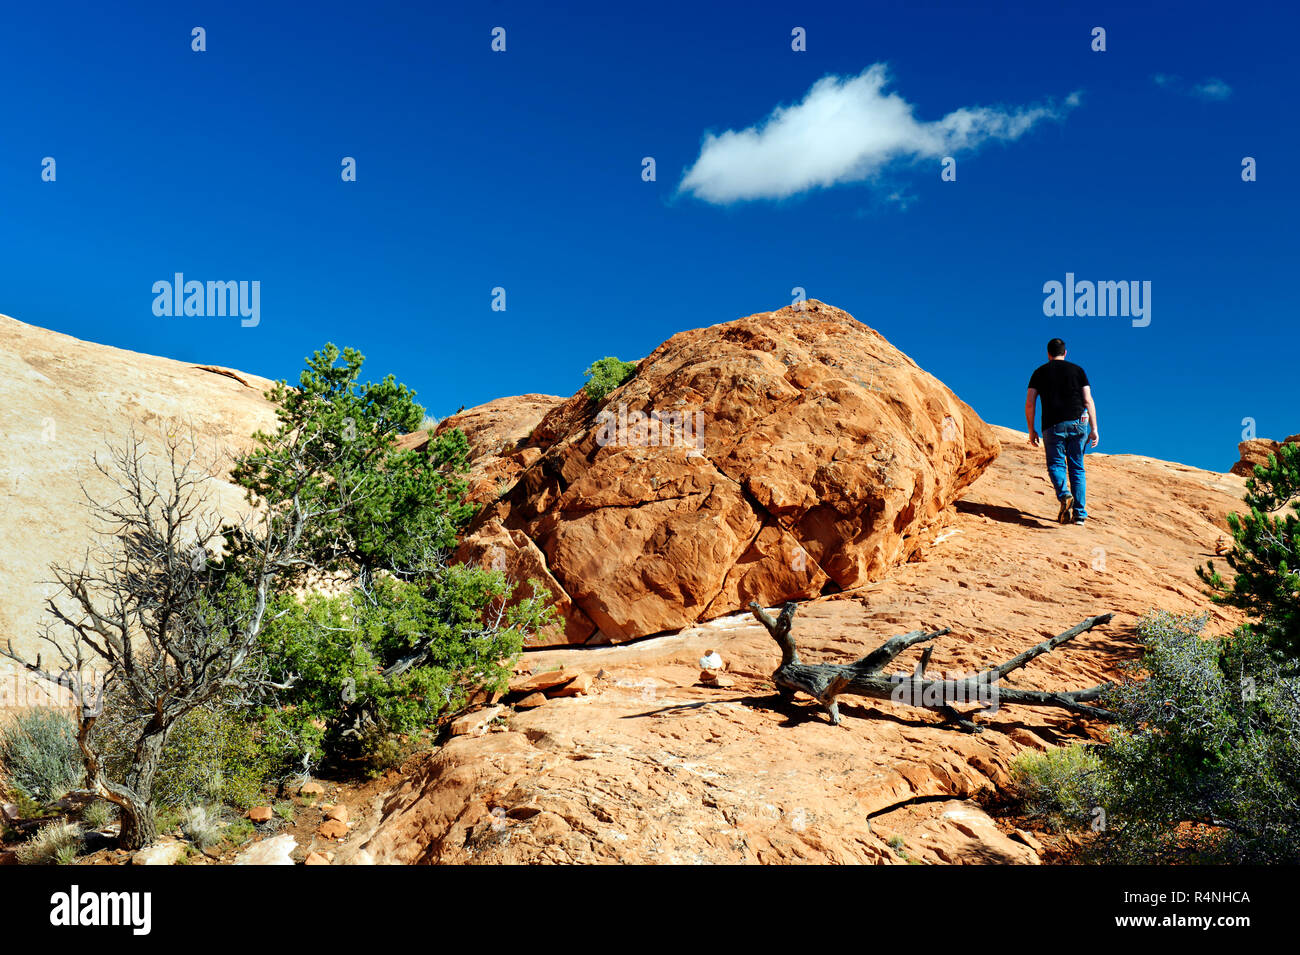 Lone male hiker walking on Upheaval Dome Overlook trail, Canyonland National Park, Utah, USA. - Stock Image